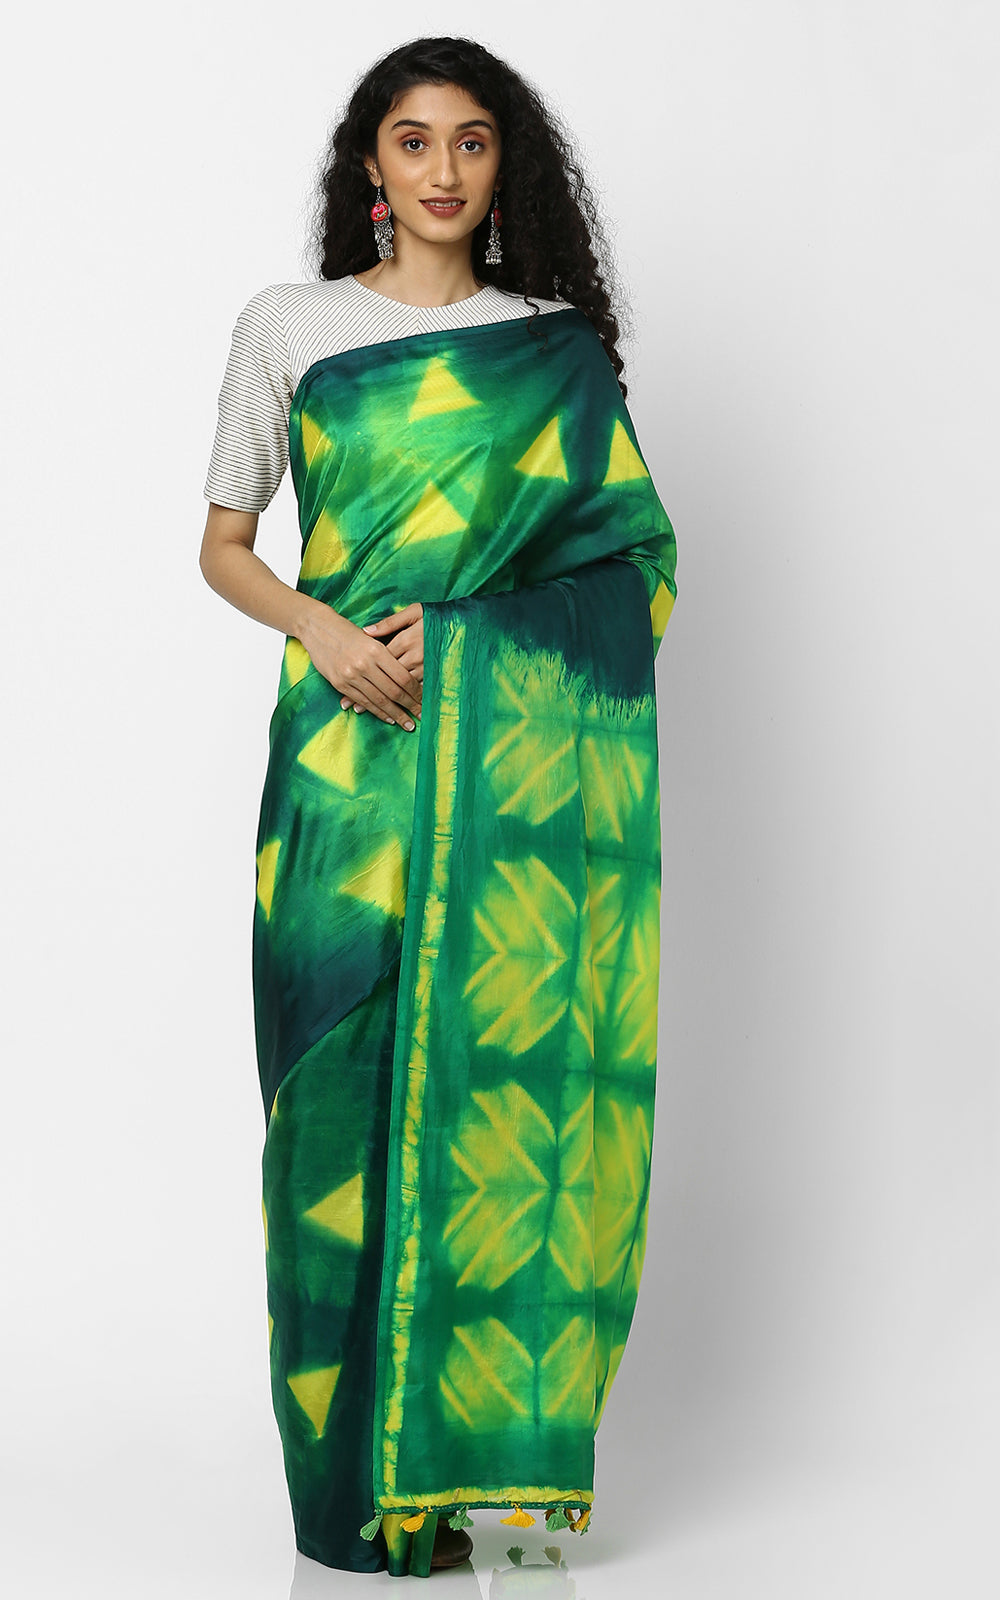 SHIBORI PURE SILK WITH GREEN AND YELLOW